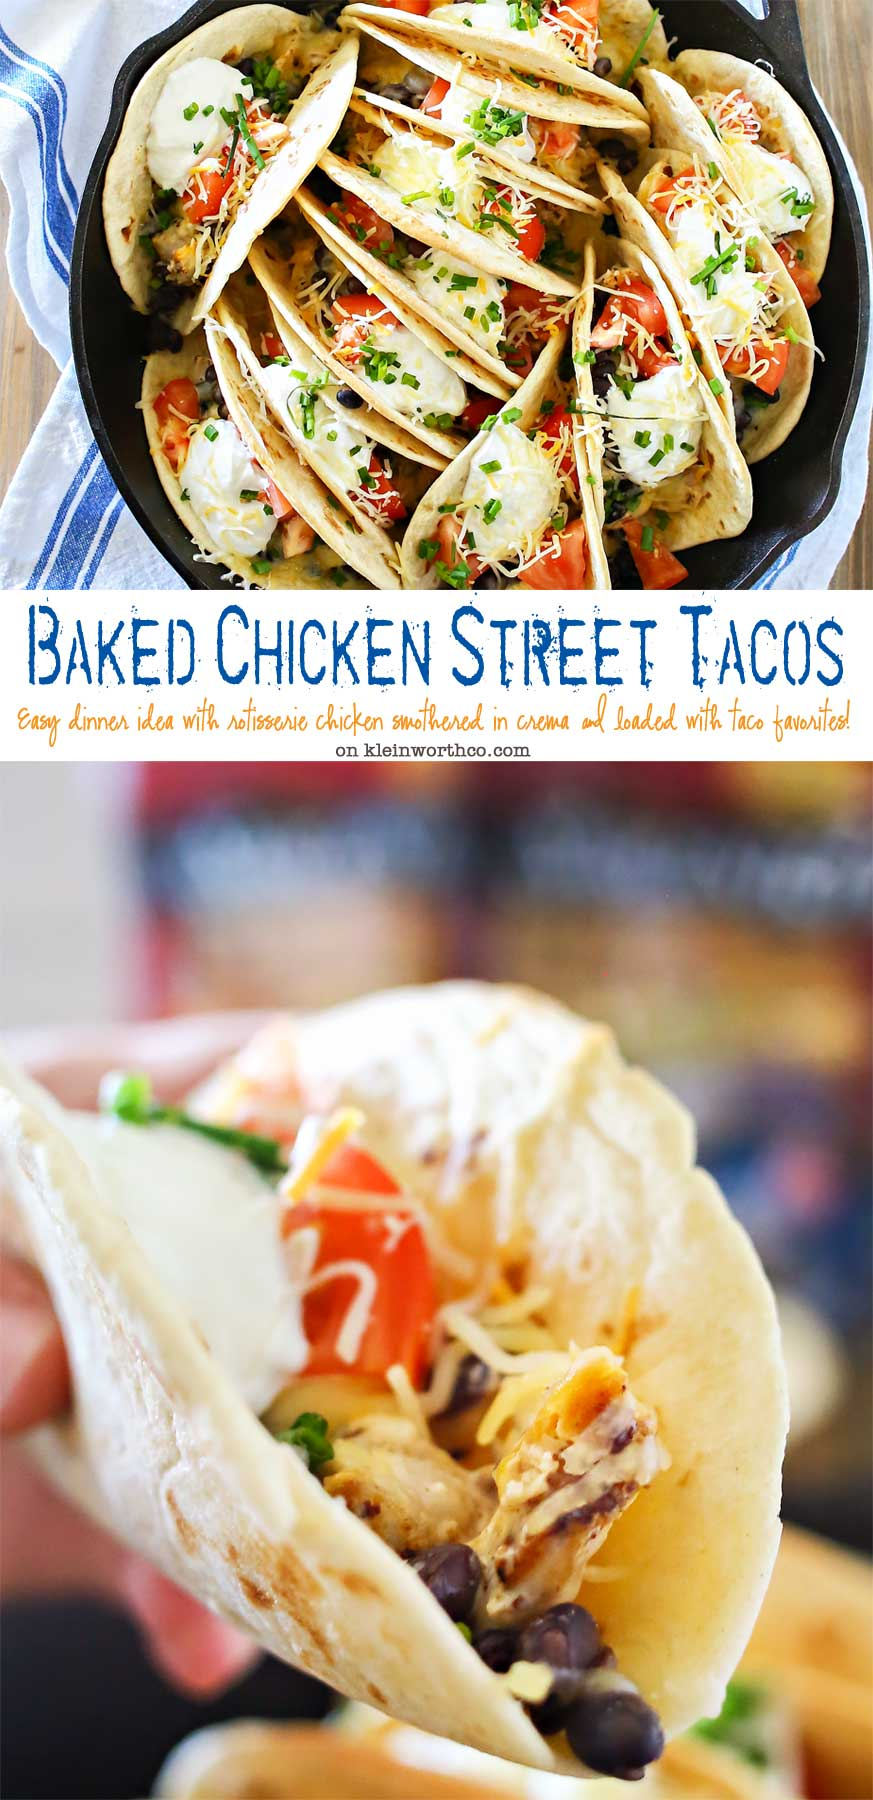 Baked Chicken Street Tacos are an easy family dinner idea. Quick to make using rotisserie chicken smothered in homemade crema & baked in the iron skillet. Seriously SO GOOD we made them twice in one weekend!